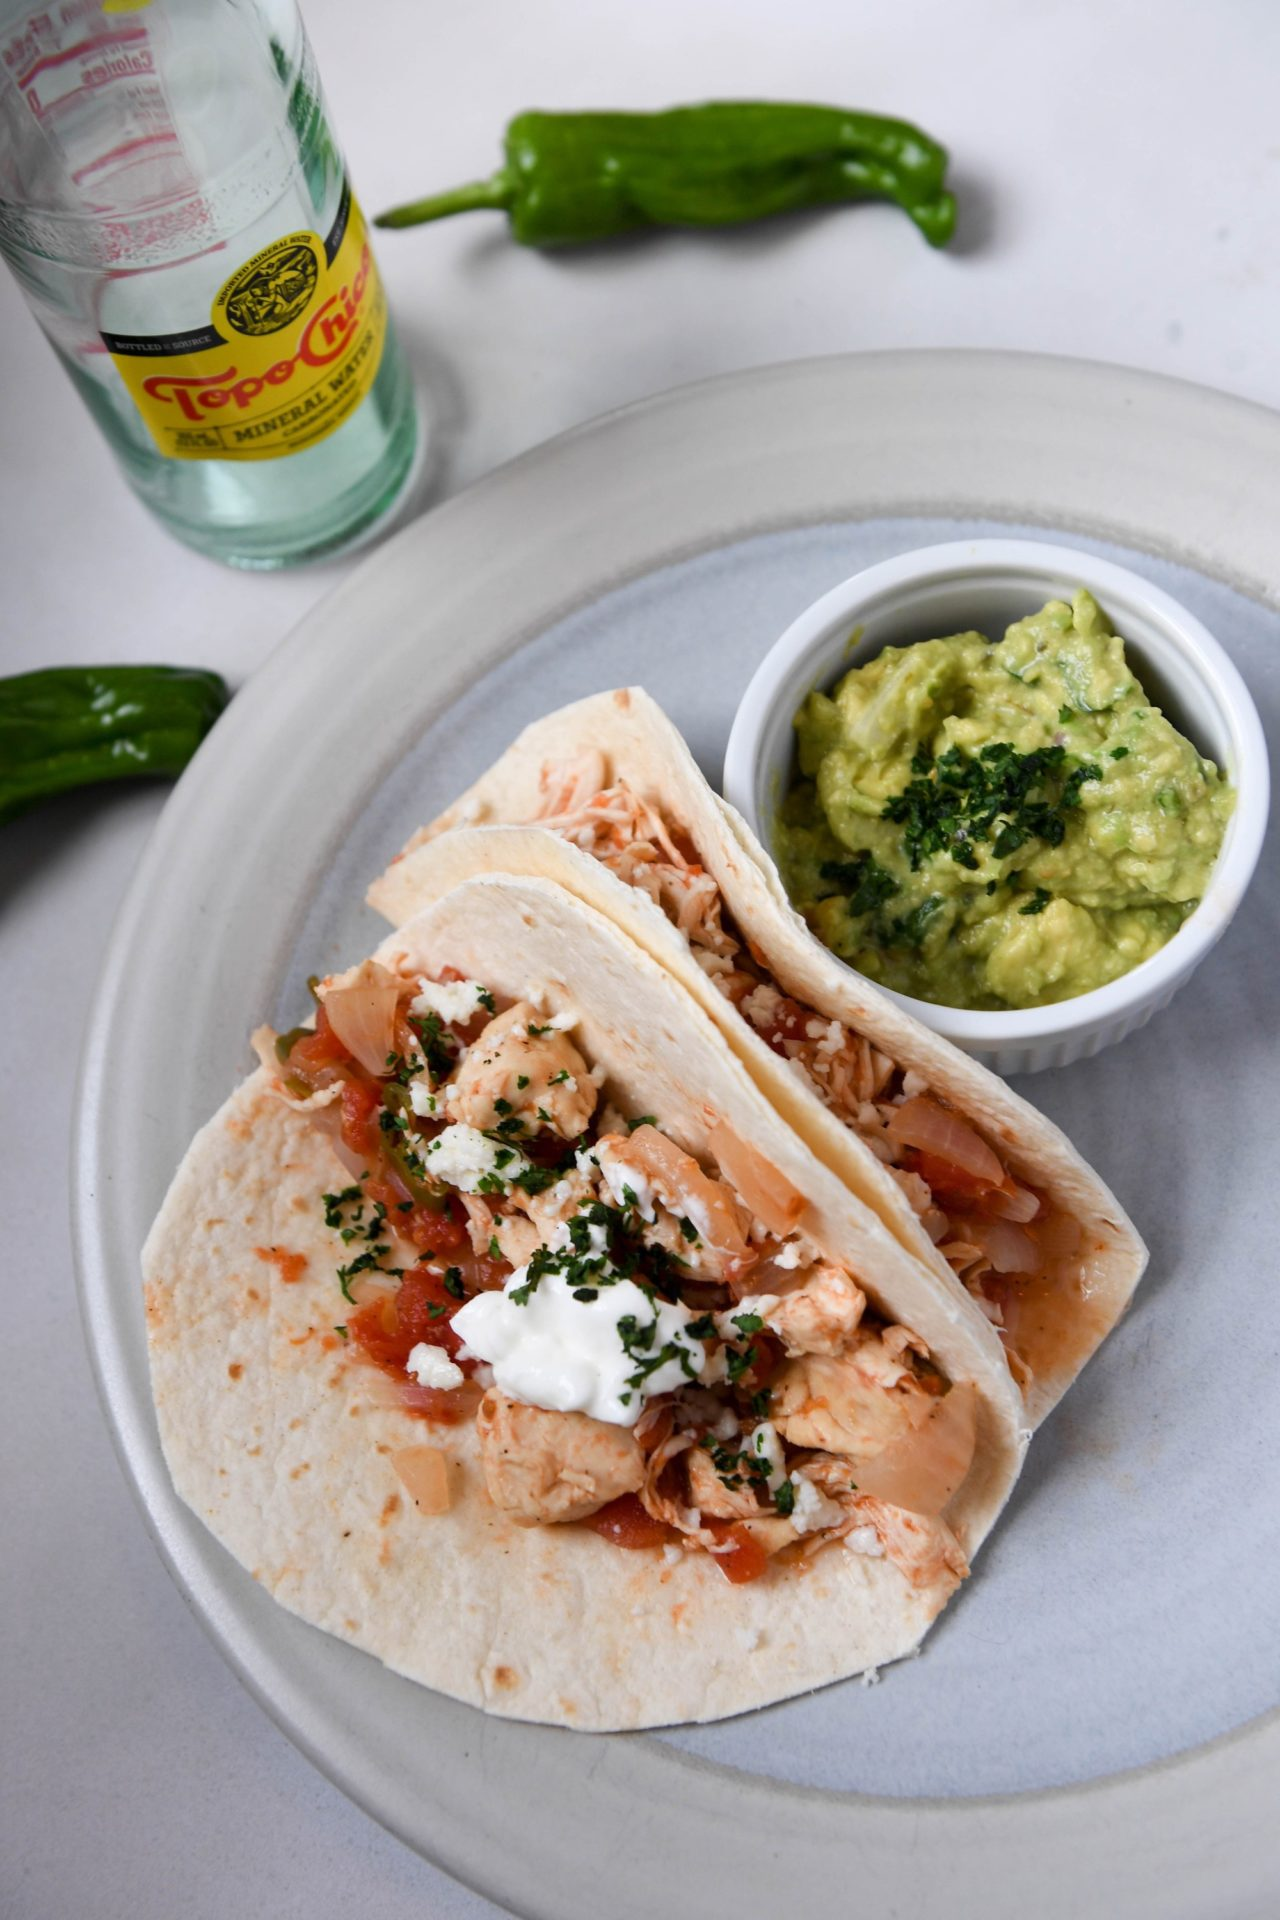 Spicy Chicken Tinga Tacos With Guacamole and Queso Fresco - Low Carb 3